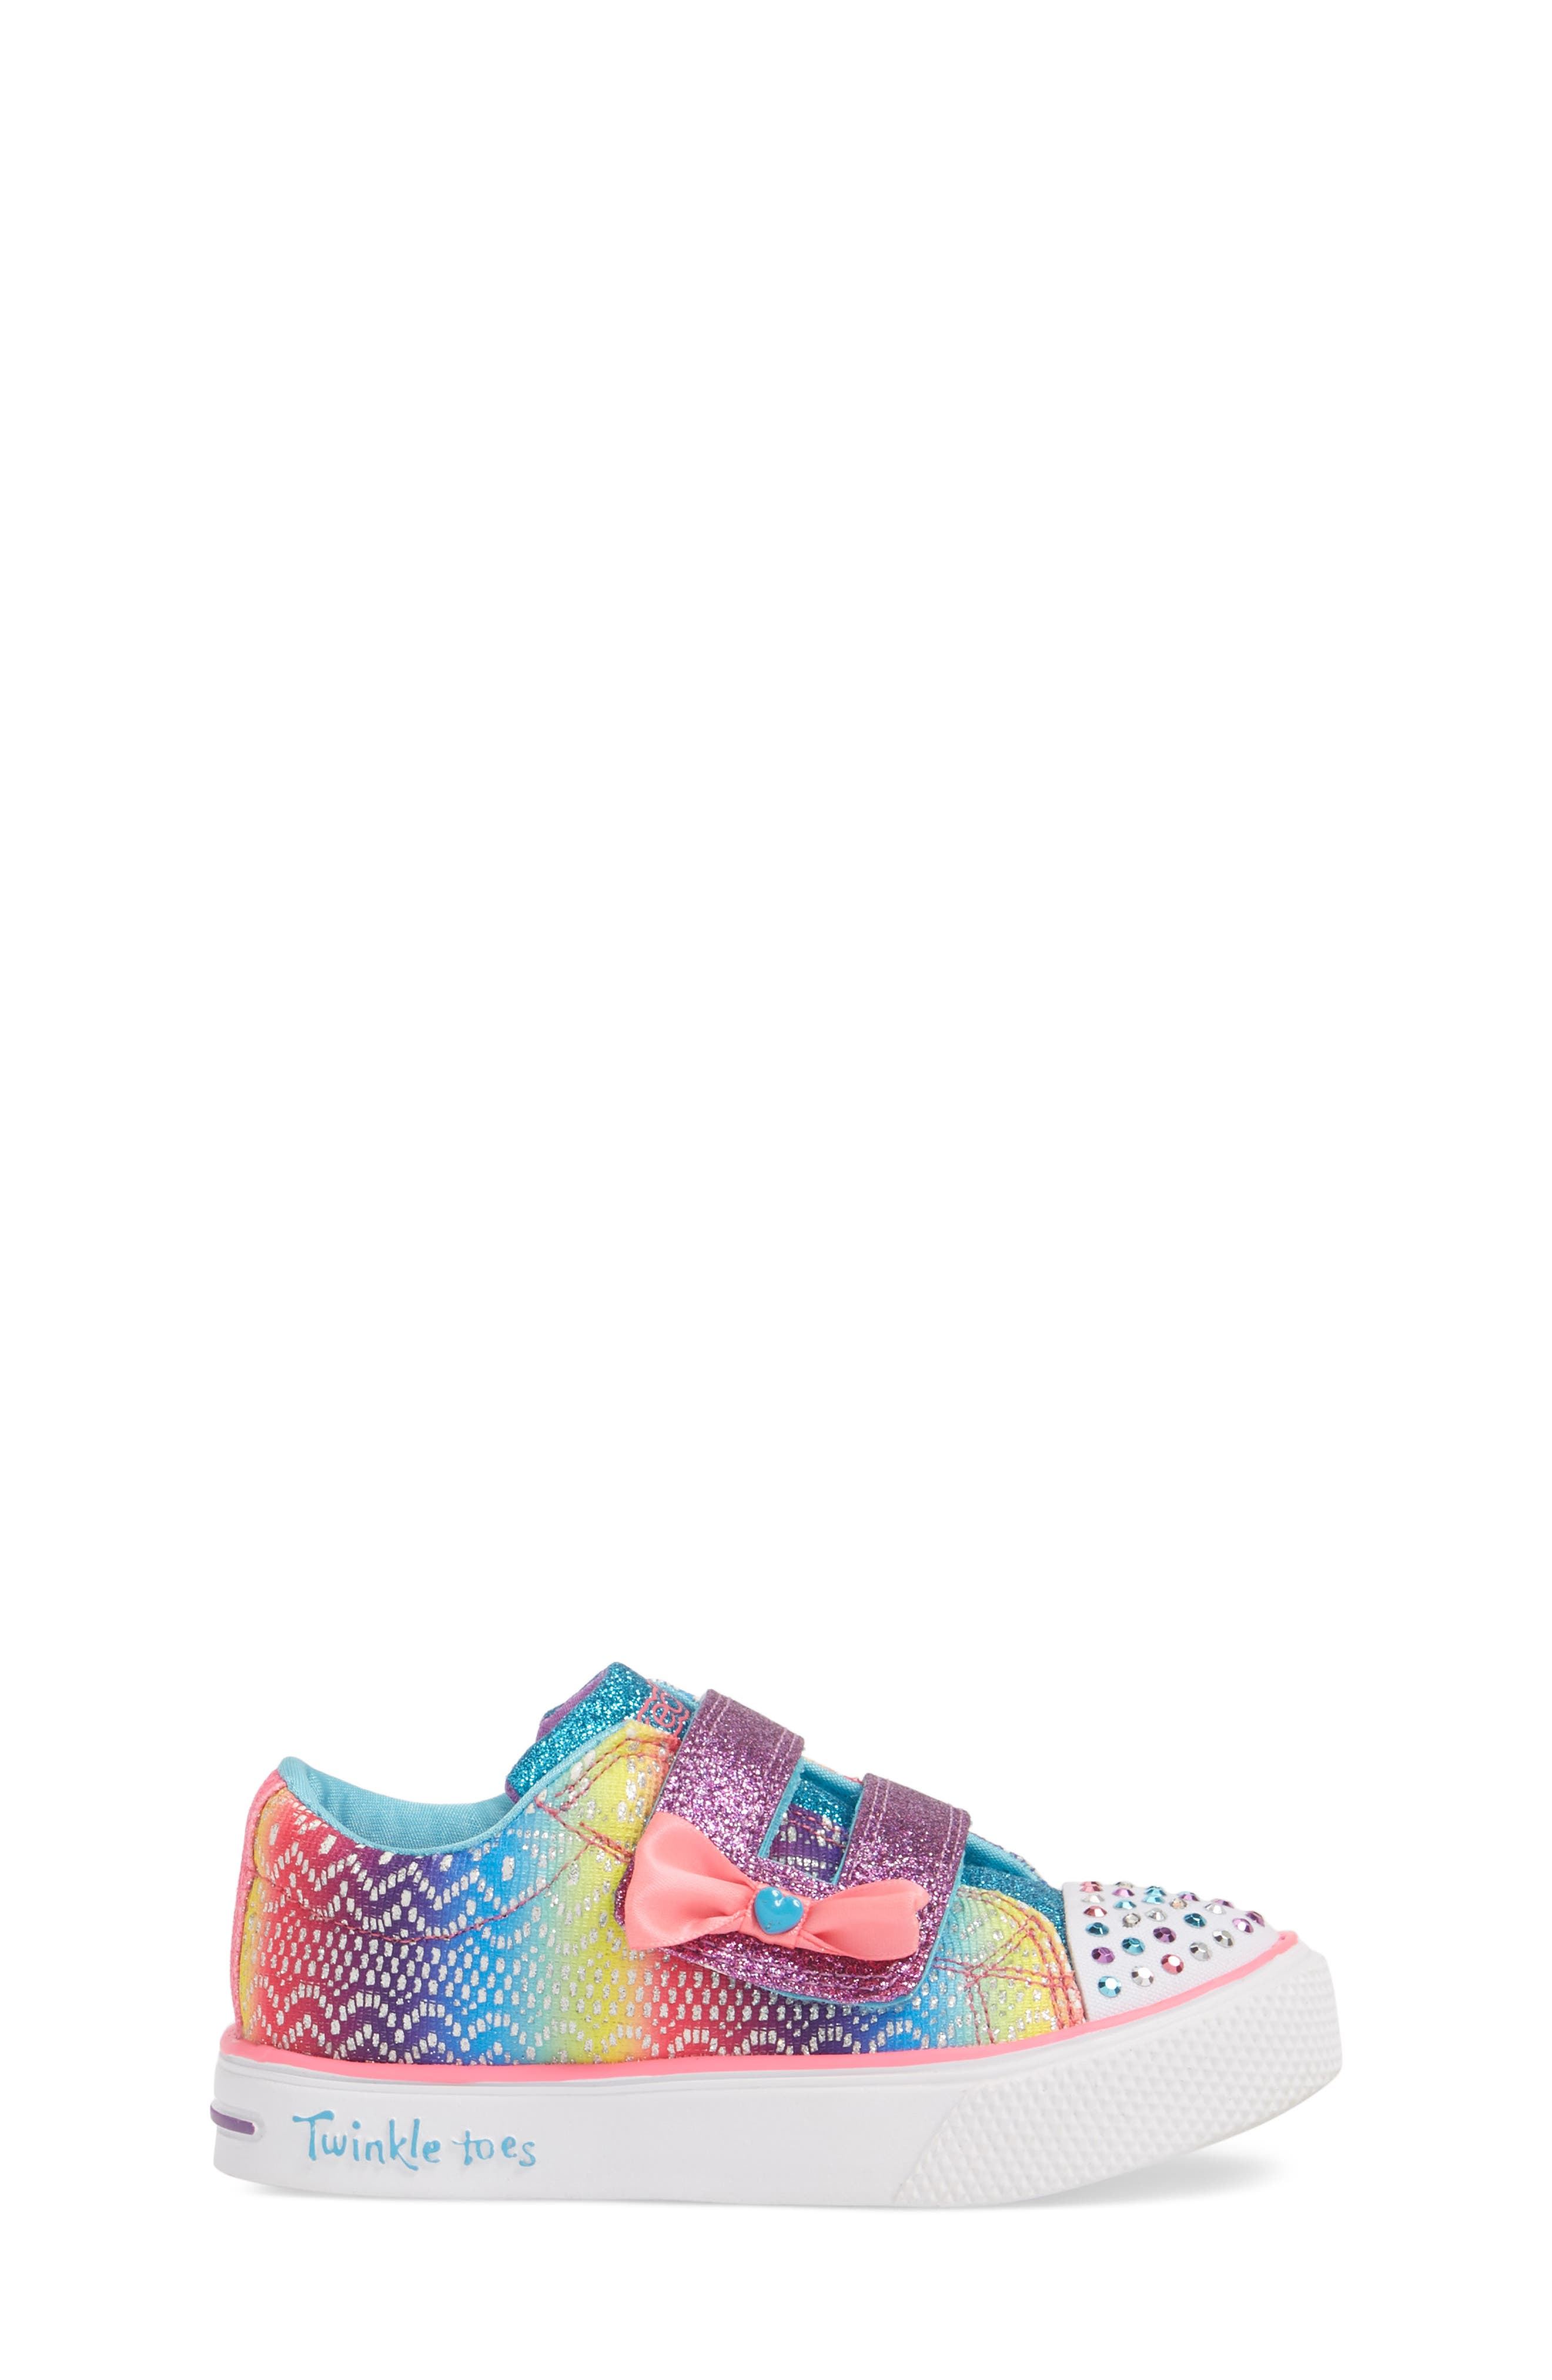 Twinkle Toes Breeze 2.0 Light-Up Sneaker,                             Alternate thumbnail 3, color,                             650